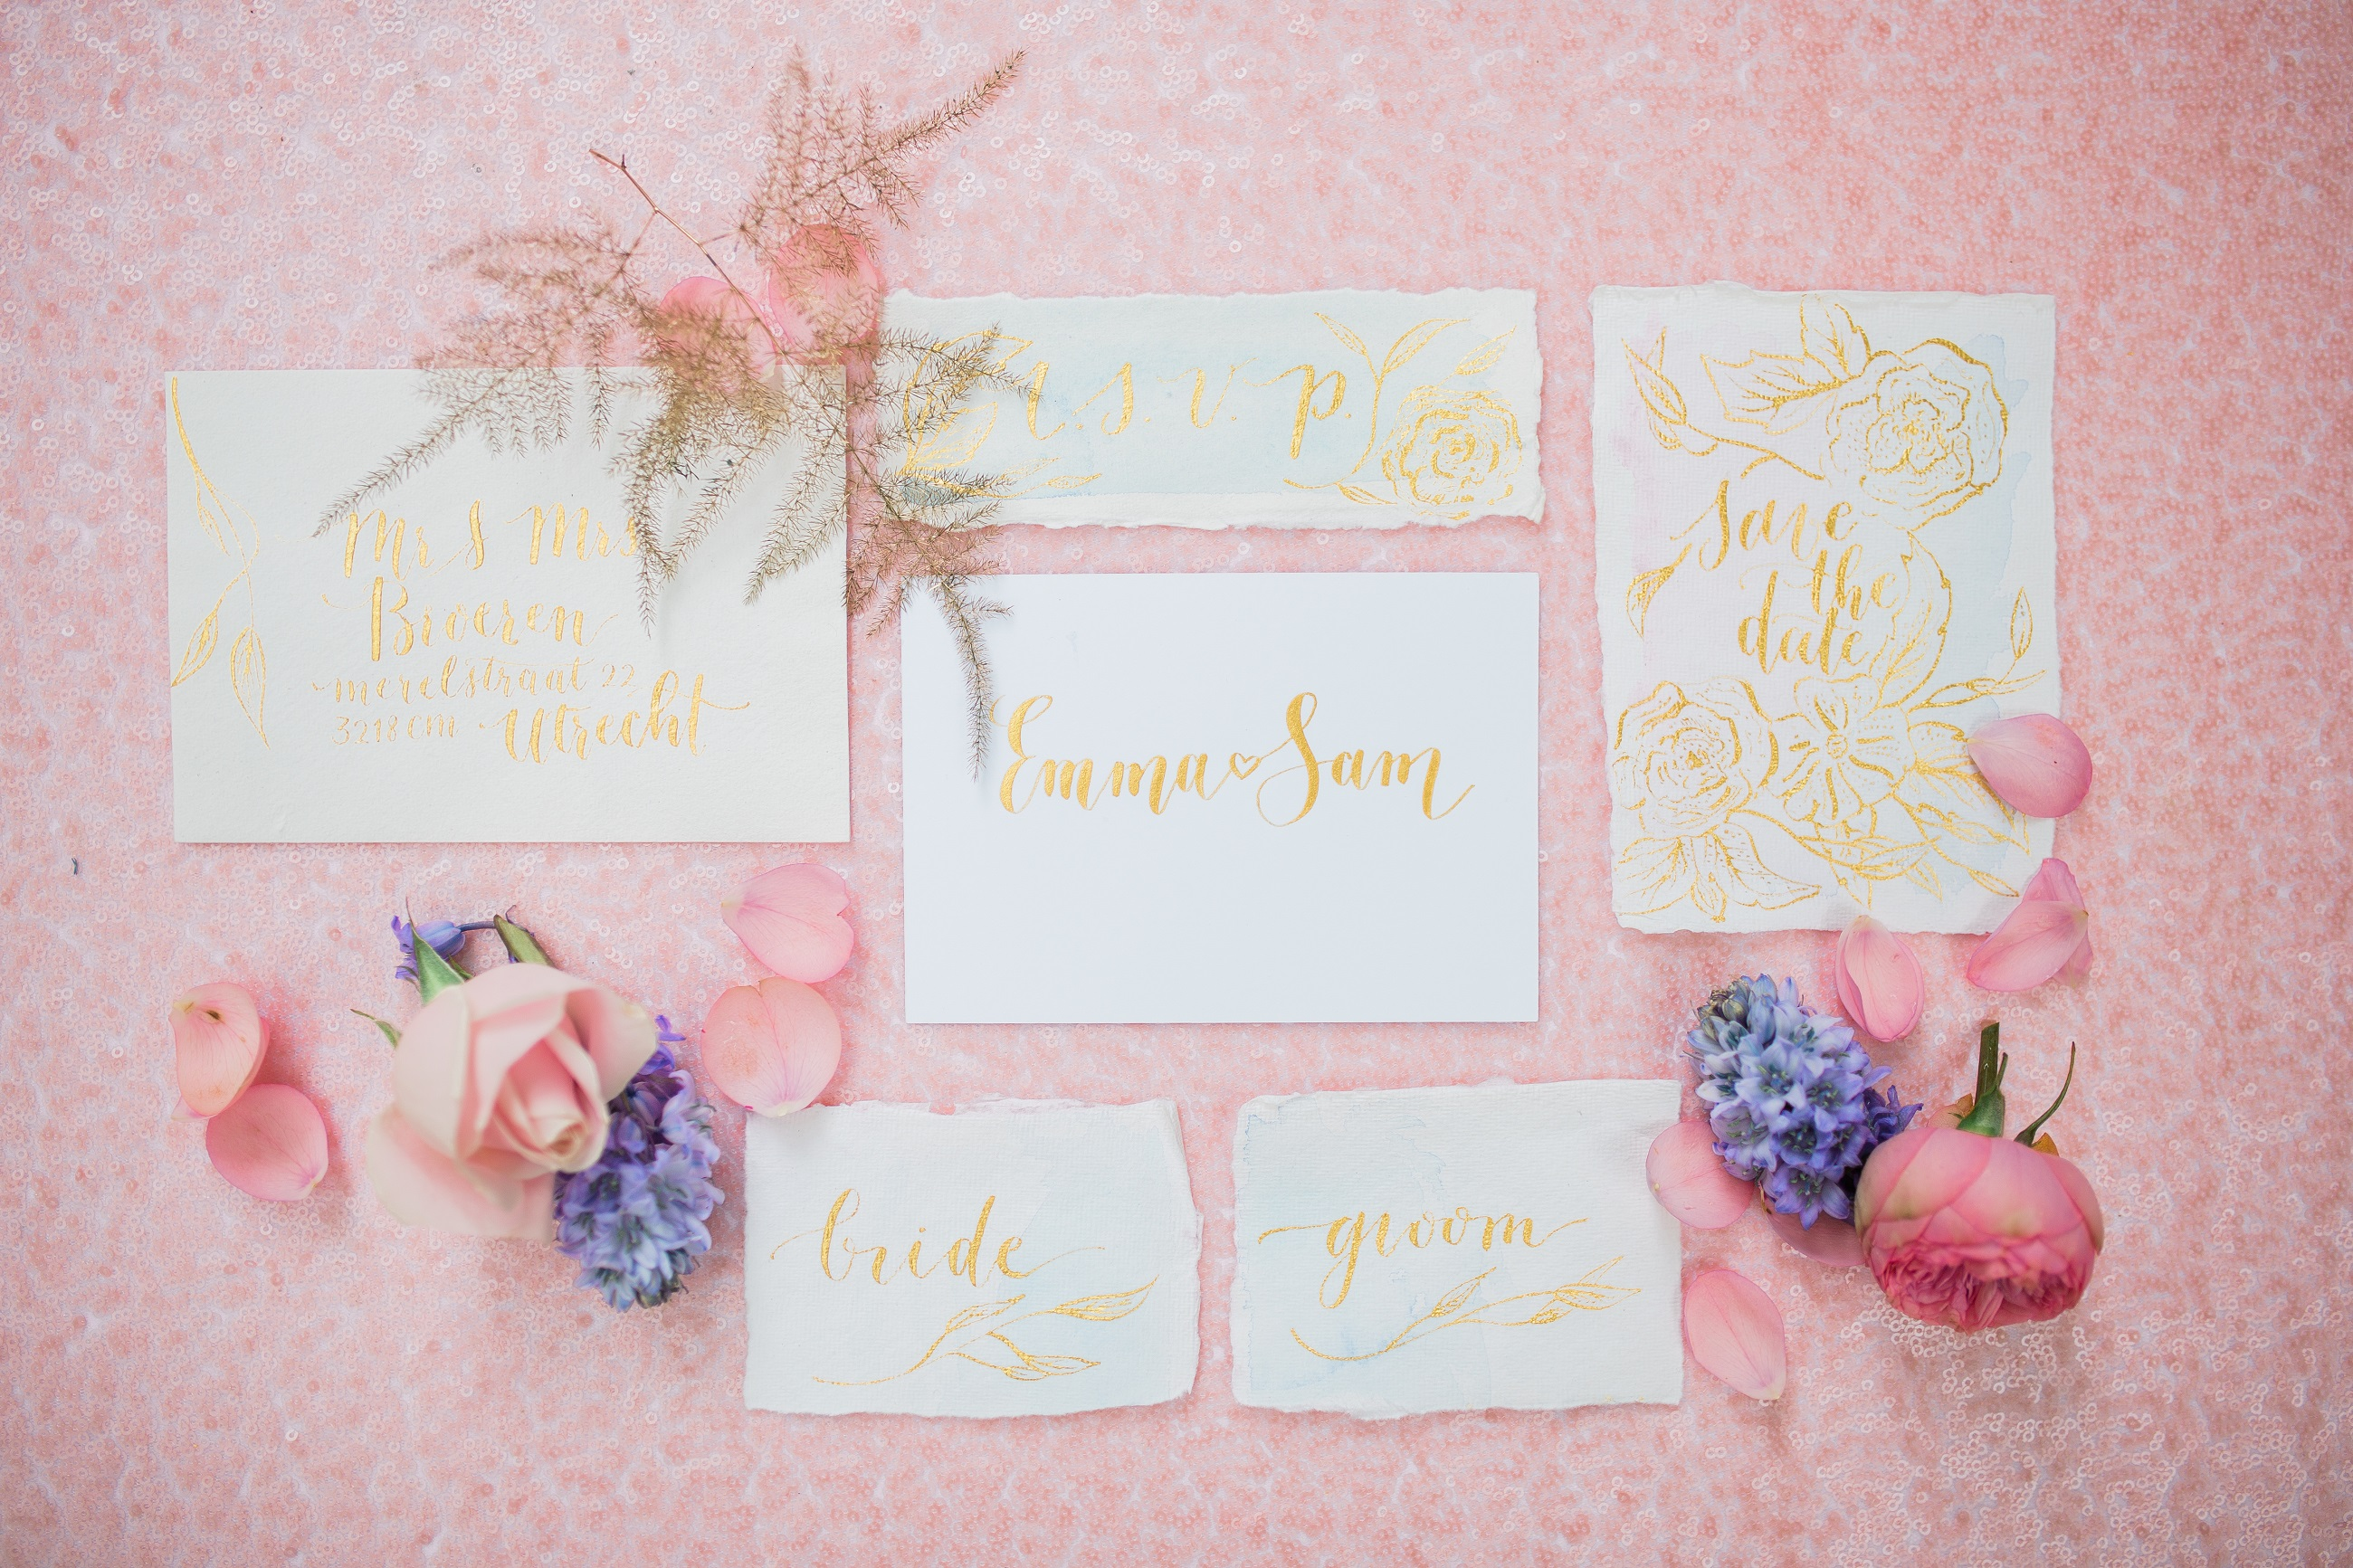 Styled Shoot Serenity & Rose Quartz, September 2016